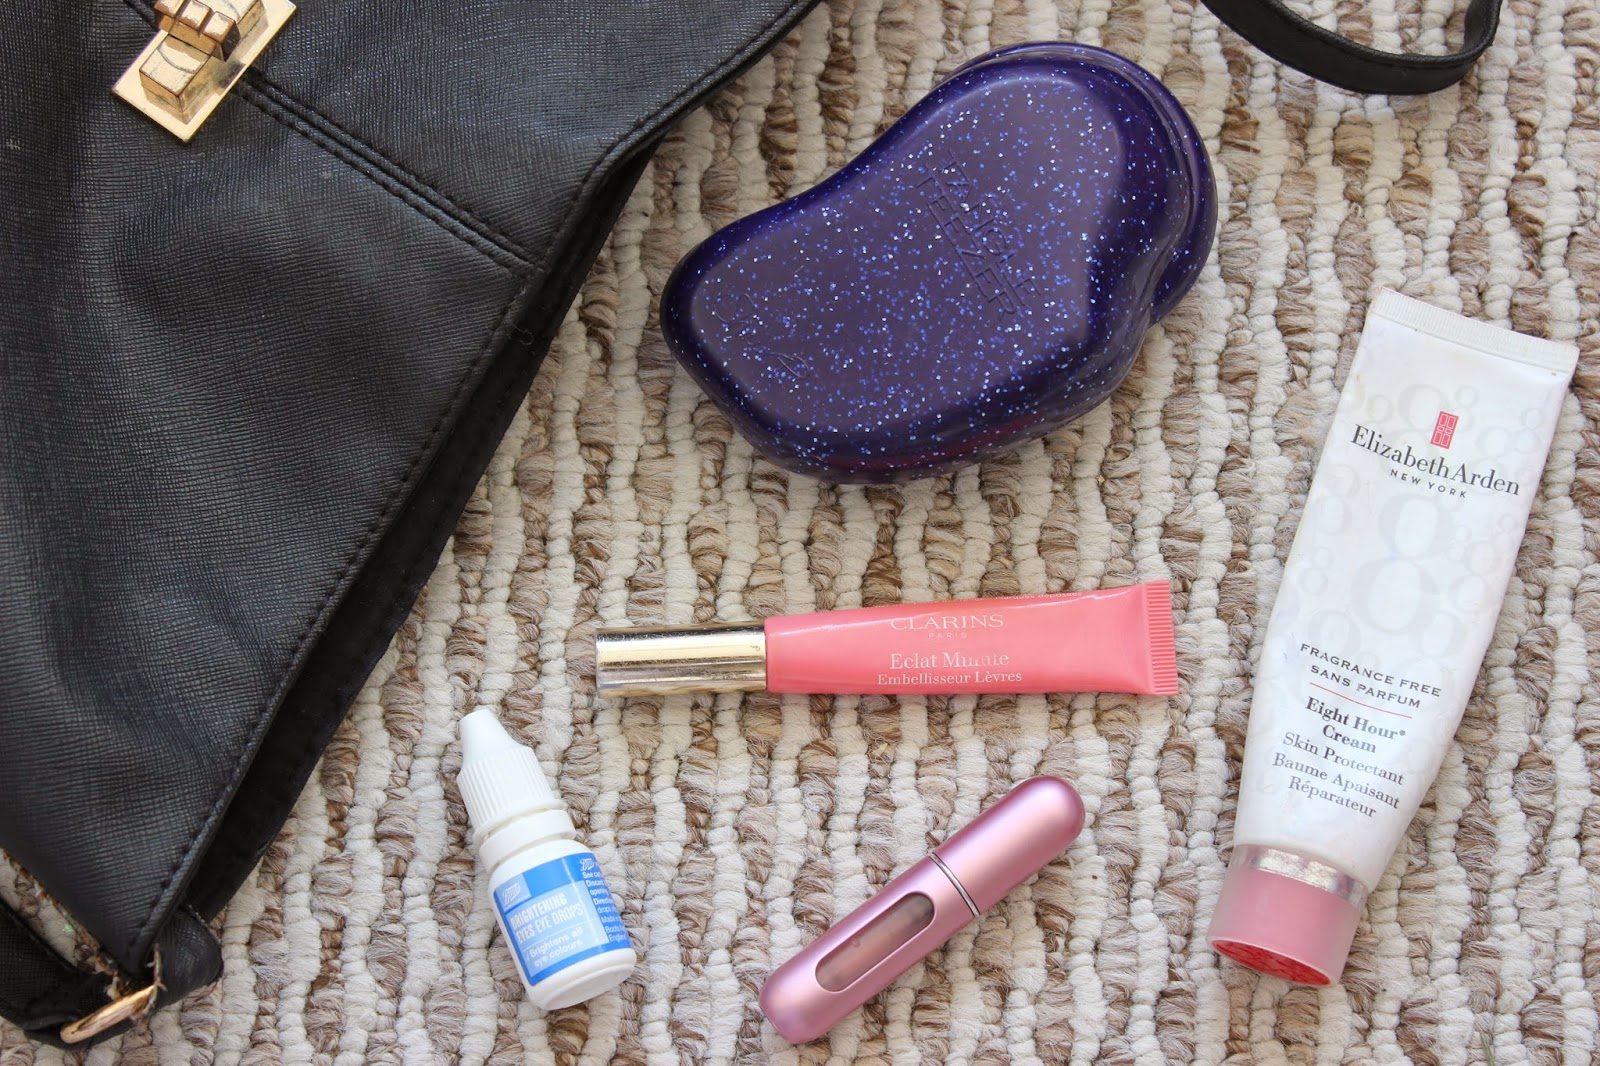 5 Things You'll Always Find In My Handbag